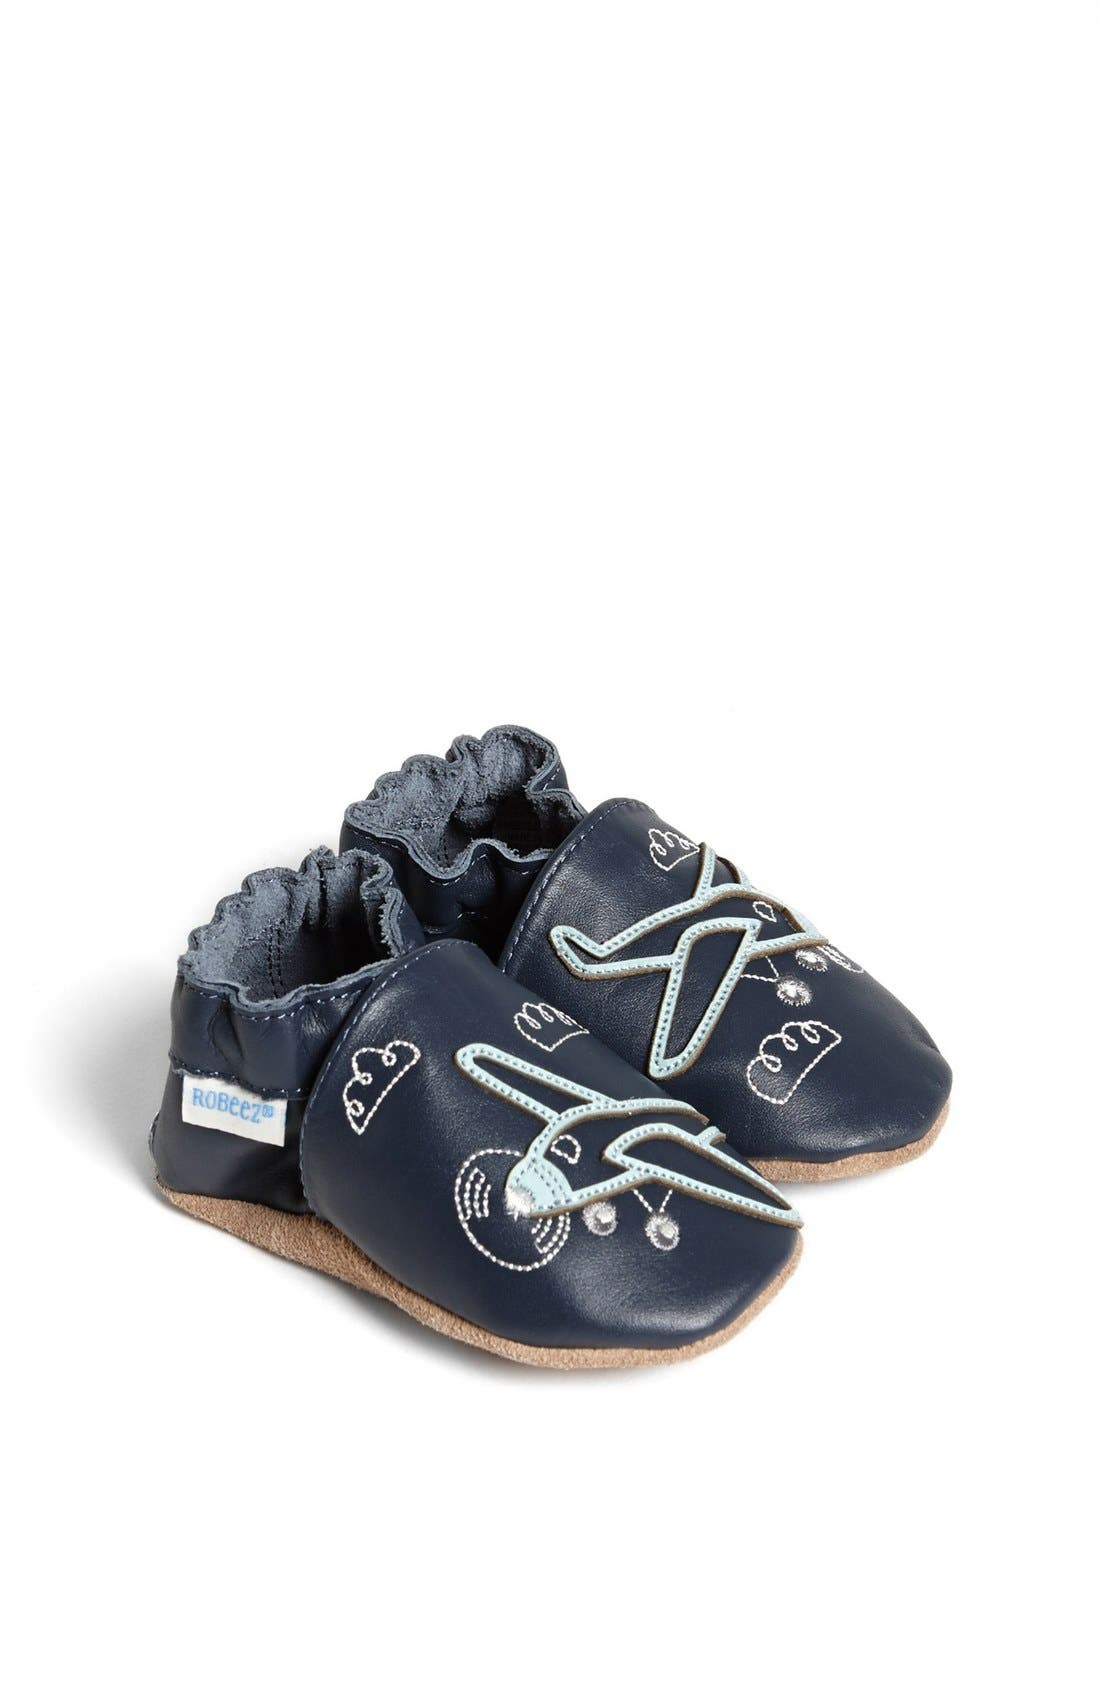 Main Image - Robeez® 'Flying High' Crib Shoe (Baby & Walker)